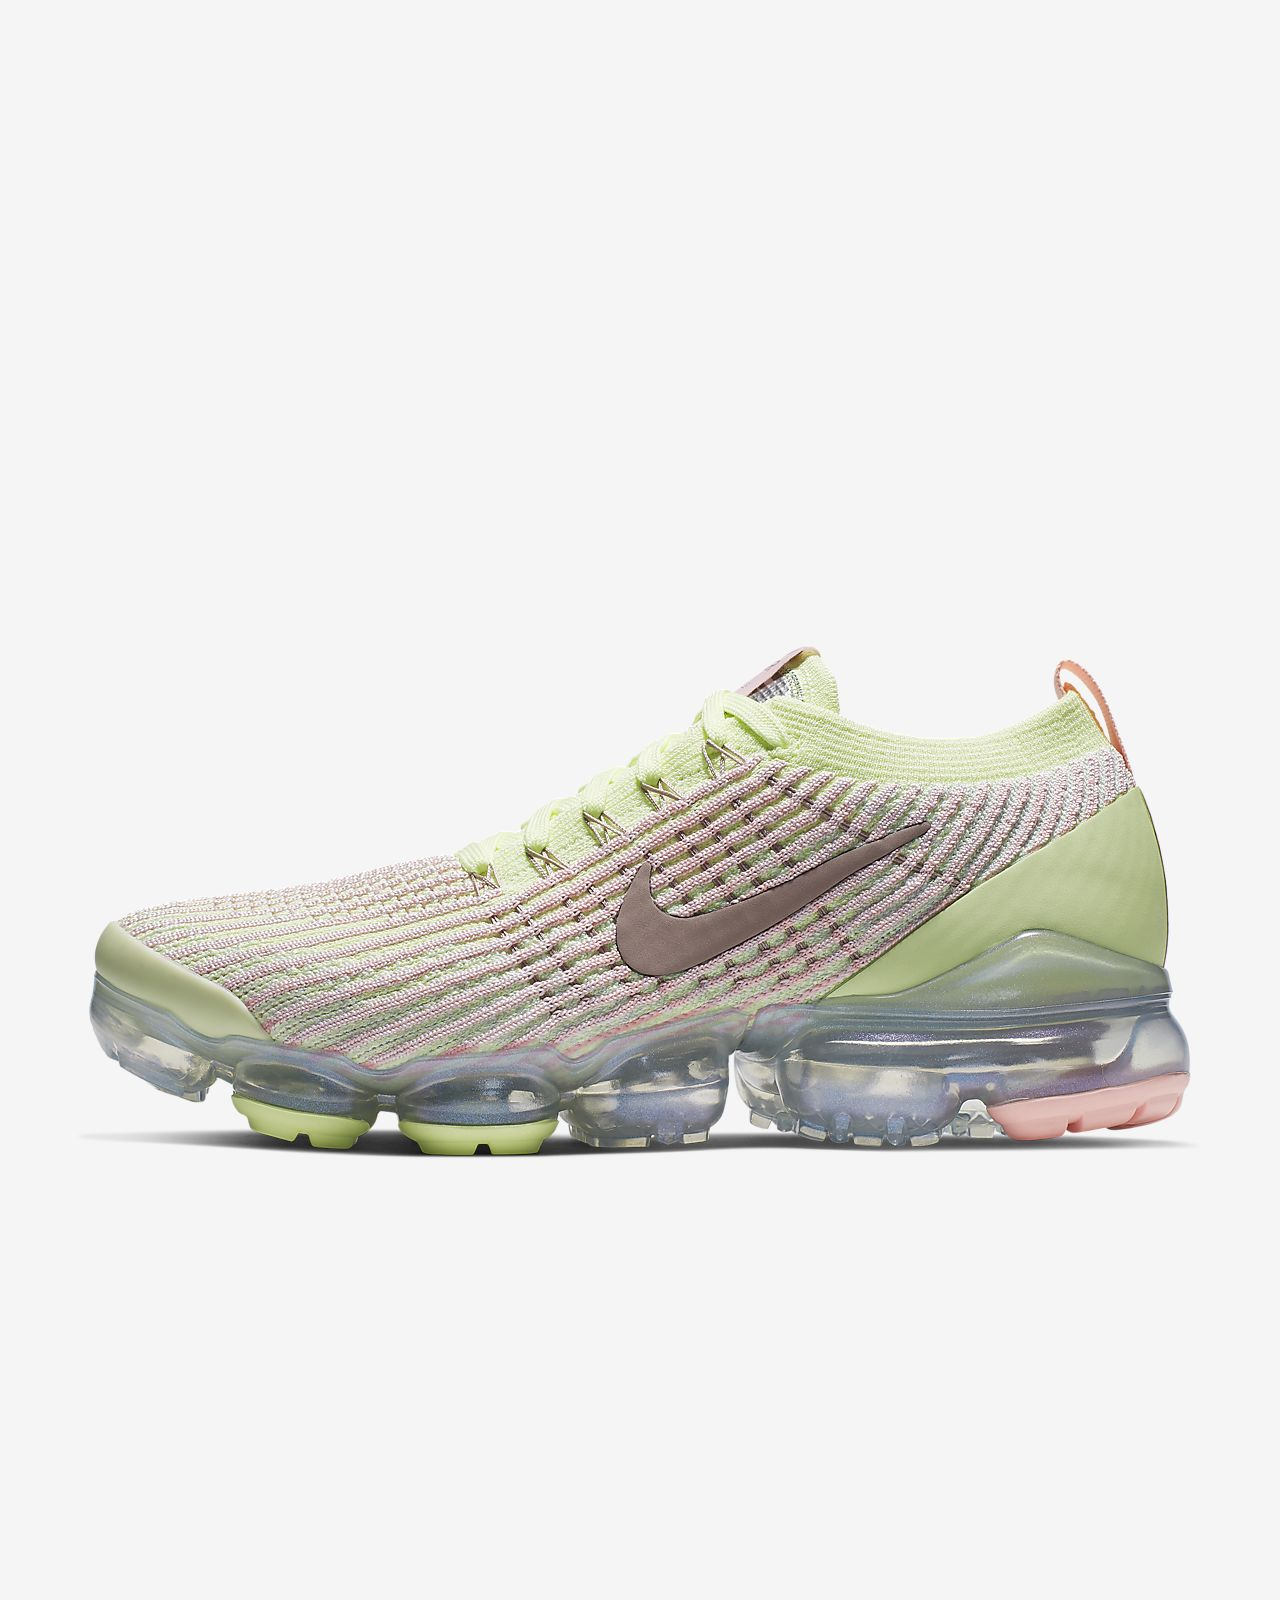 innovative design 8e3a5 712ce ... Nike Air VaporMax Flyknit 3 Women s Shoe